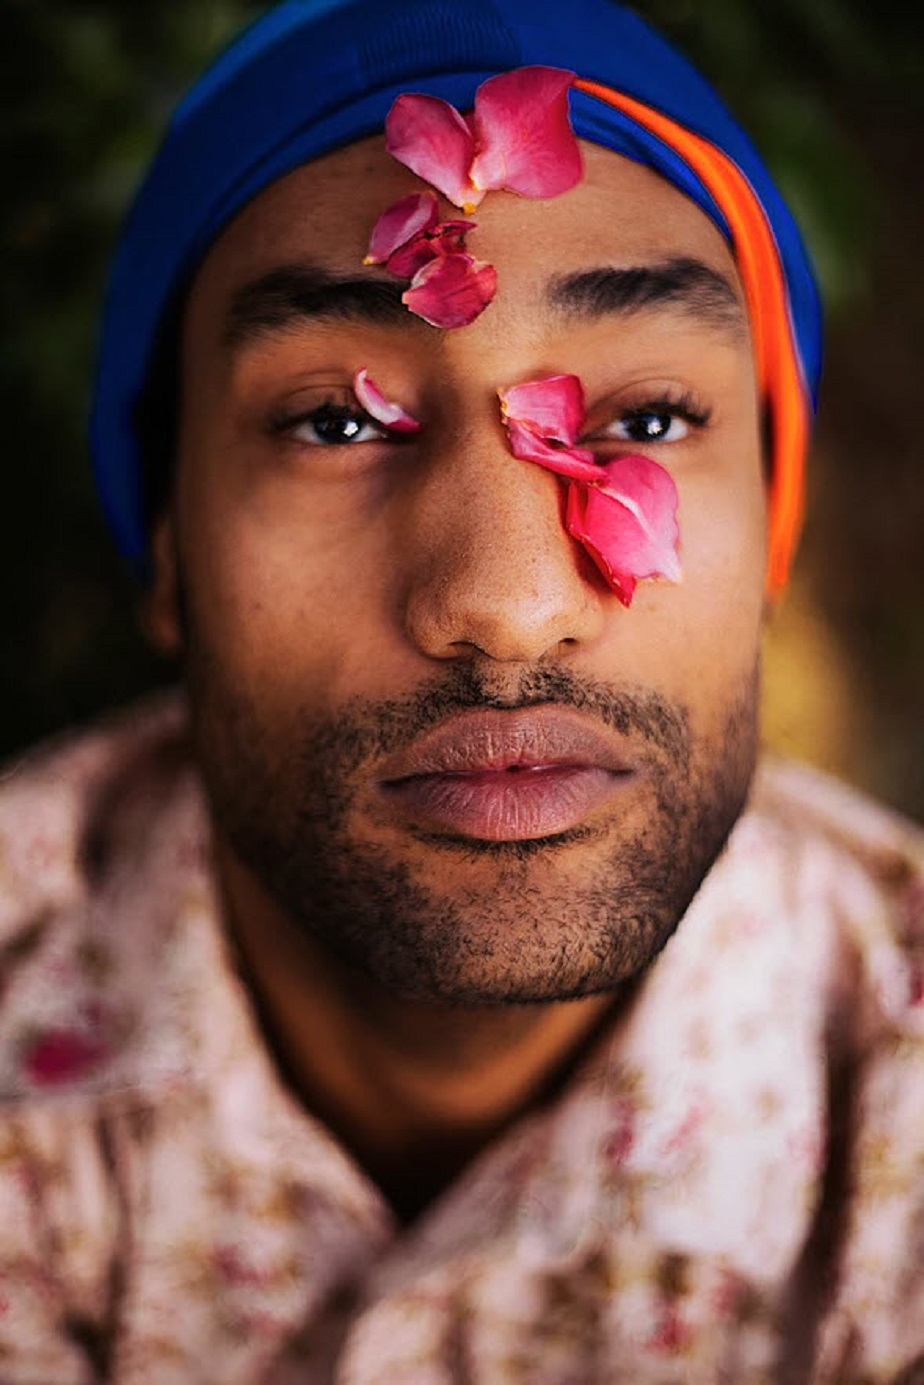 Man with flowers on his face by Wix photographer Fontenele